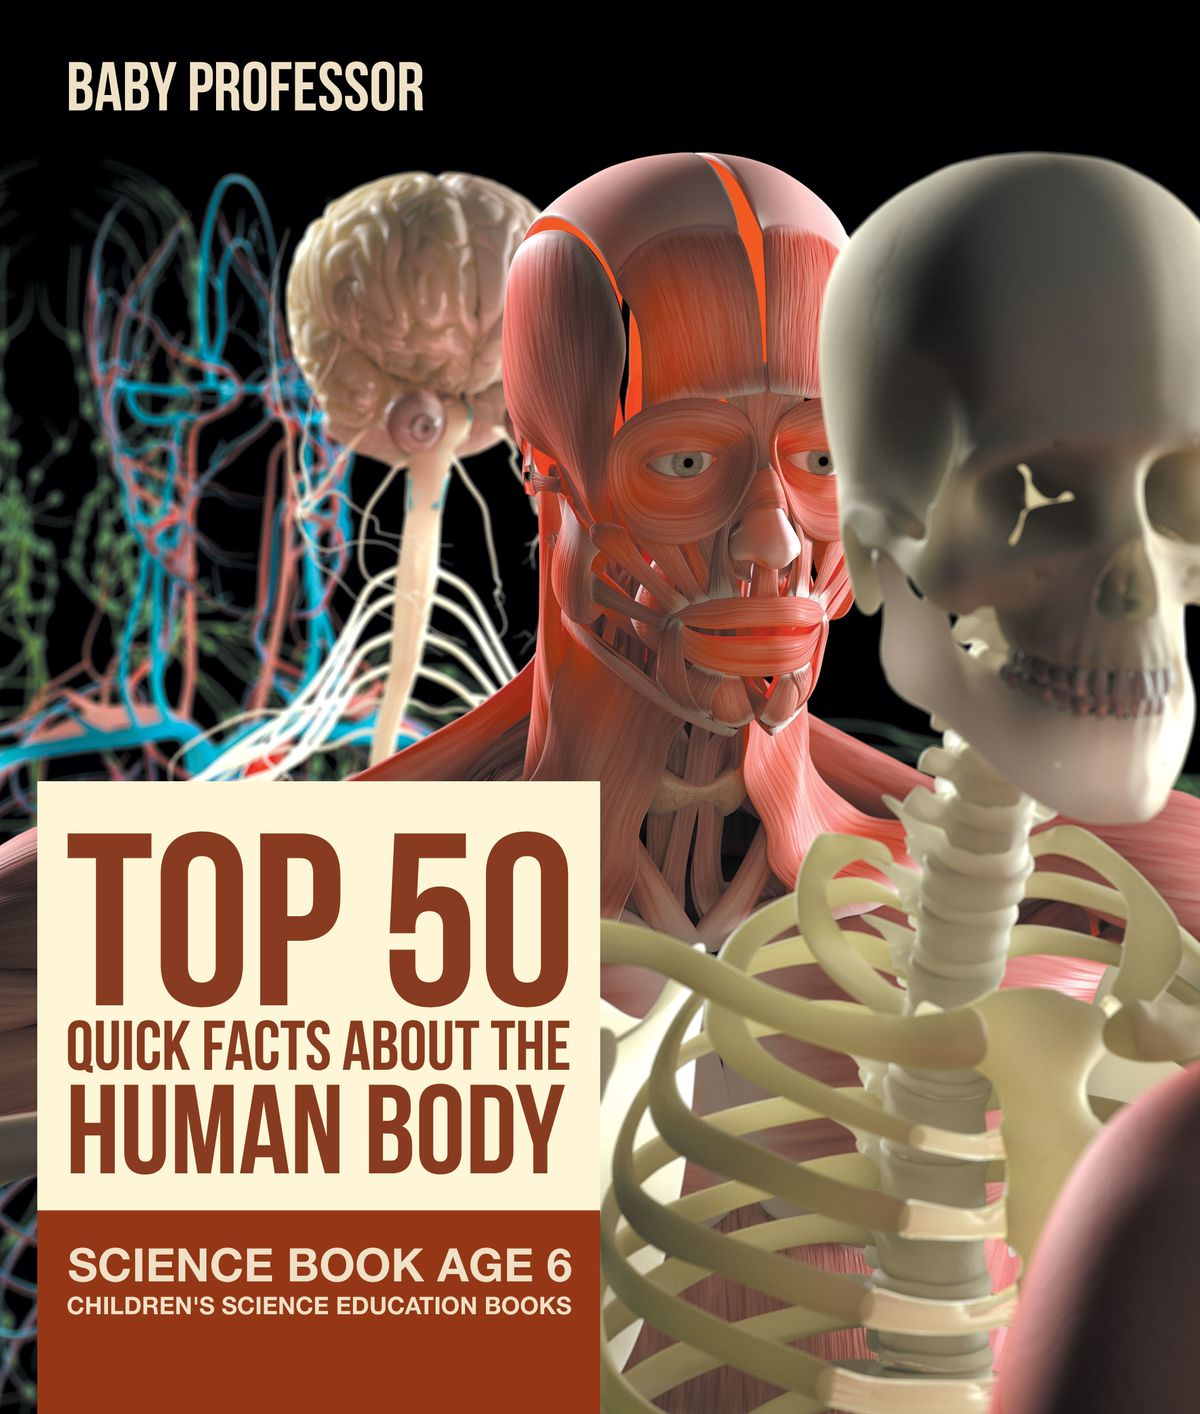 Top 50 Quick Facts About The Human Body